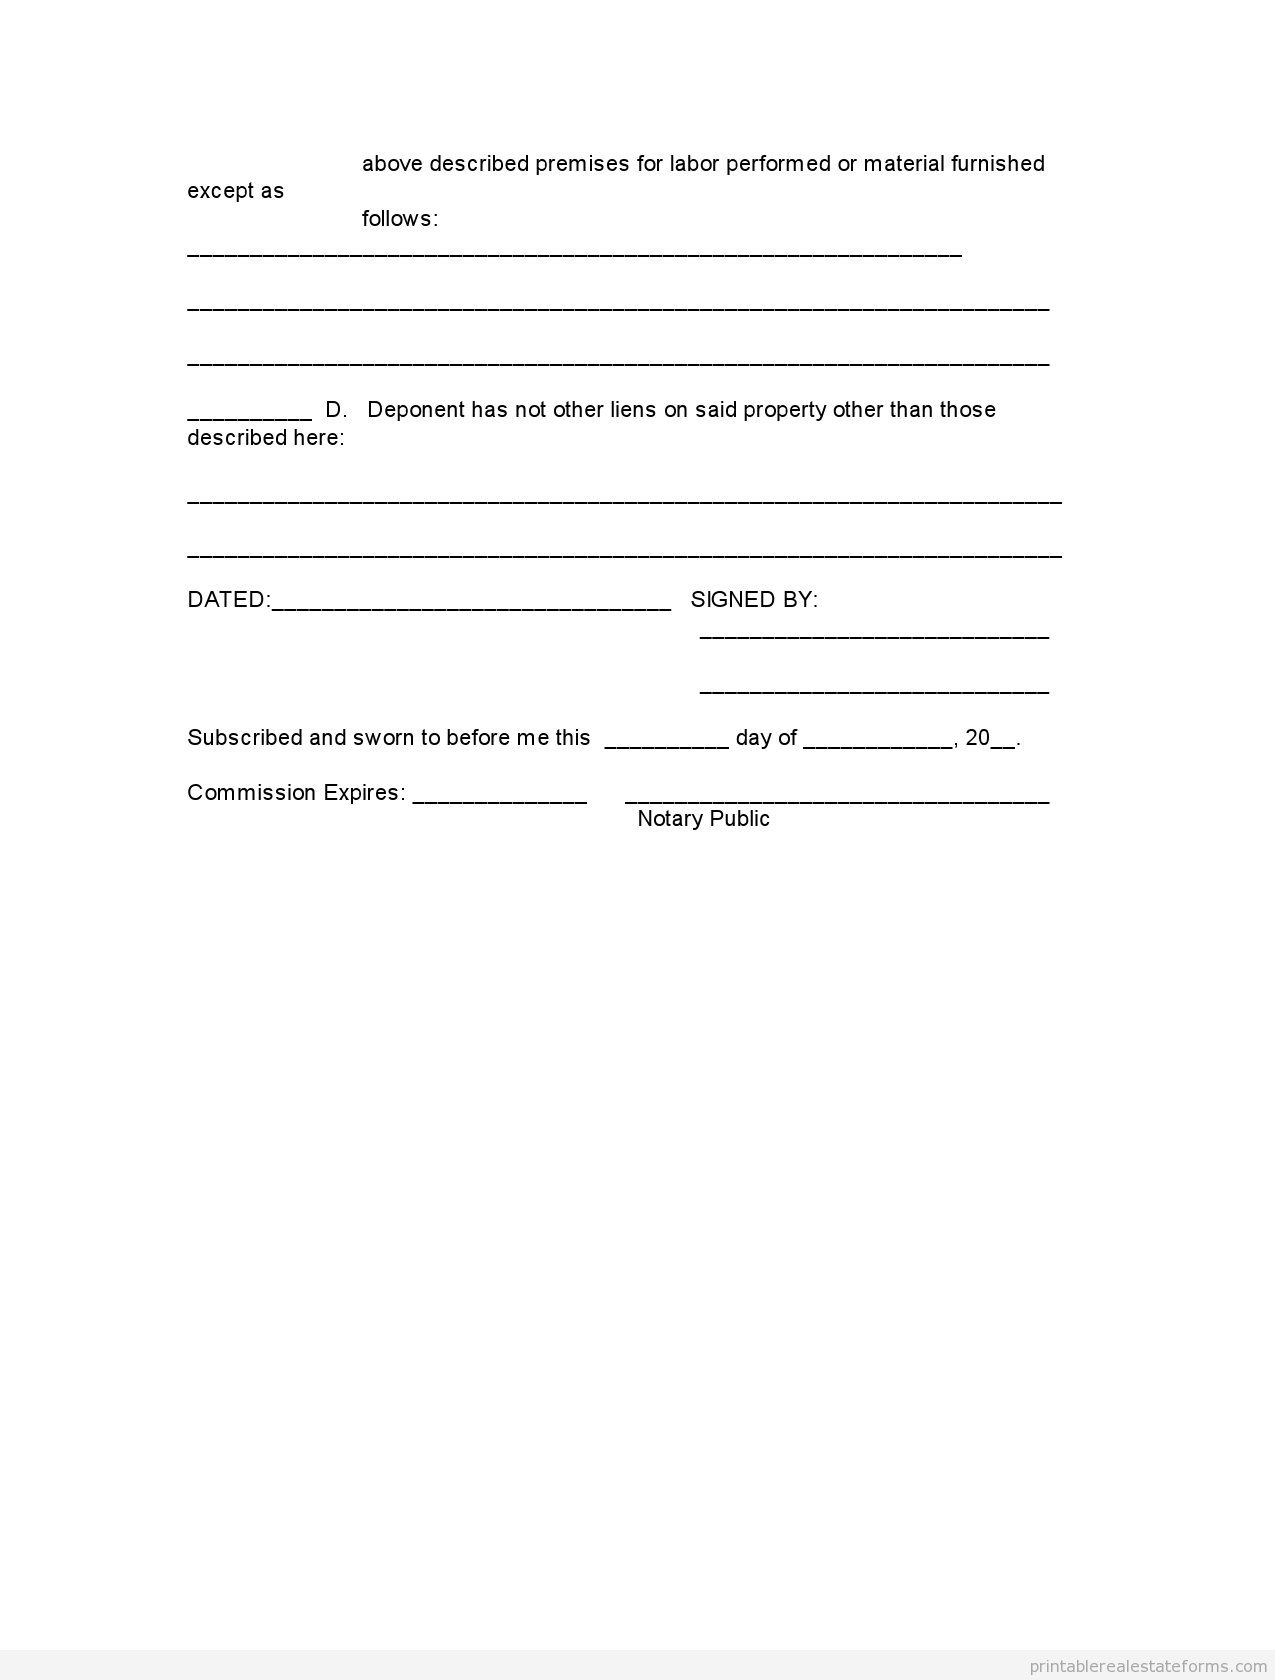 Sample Affidavit Template word resume template – General Affidavit Example